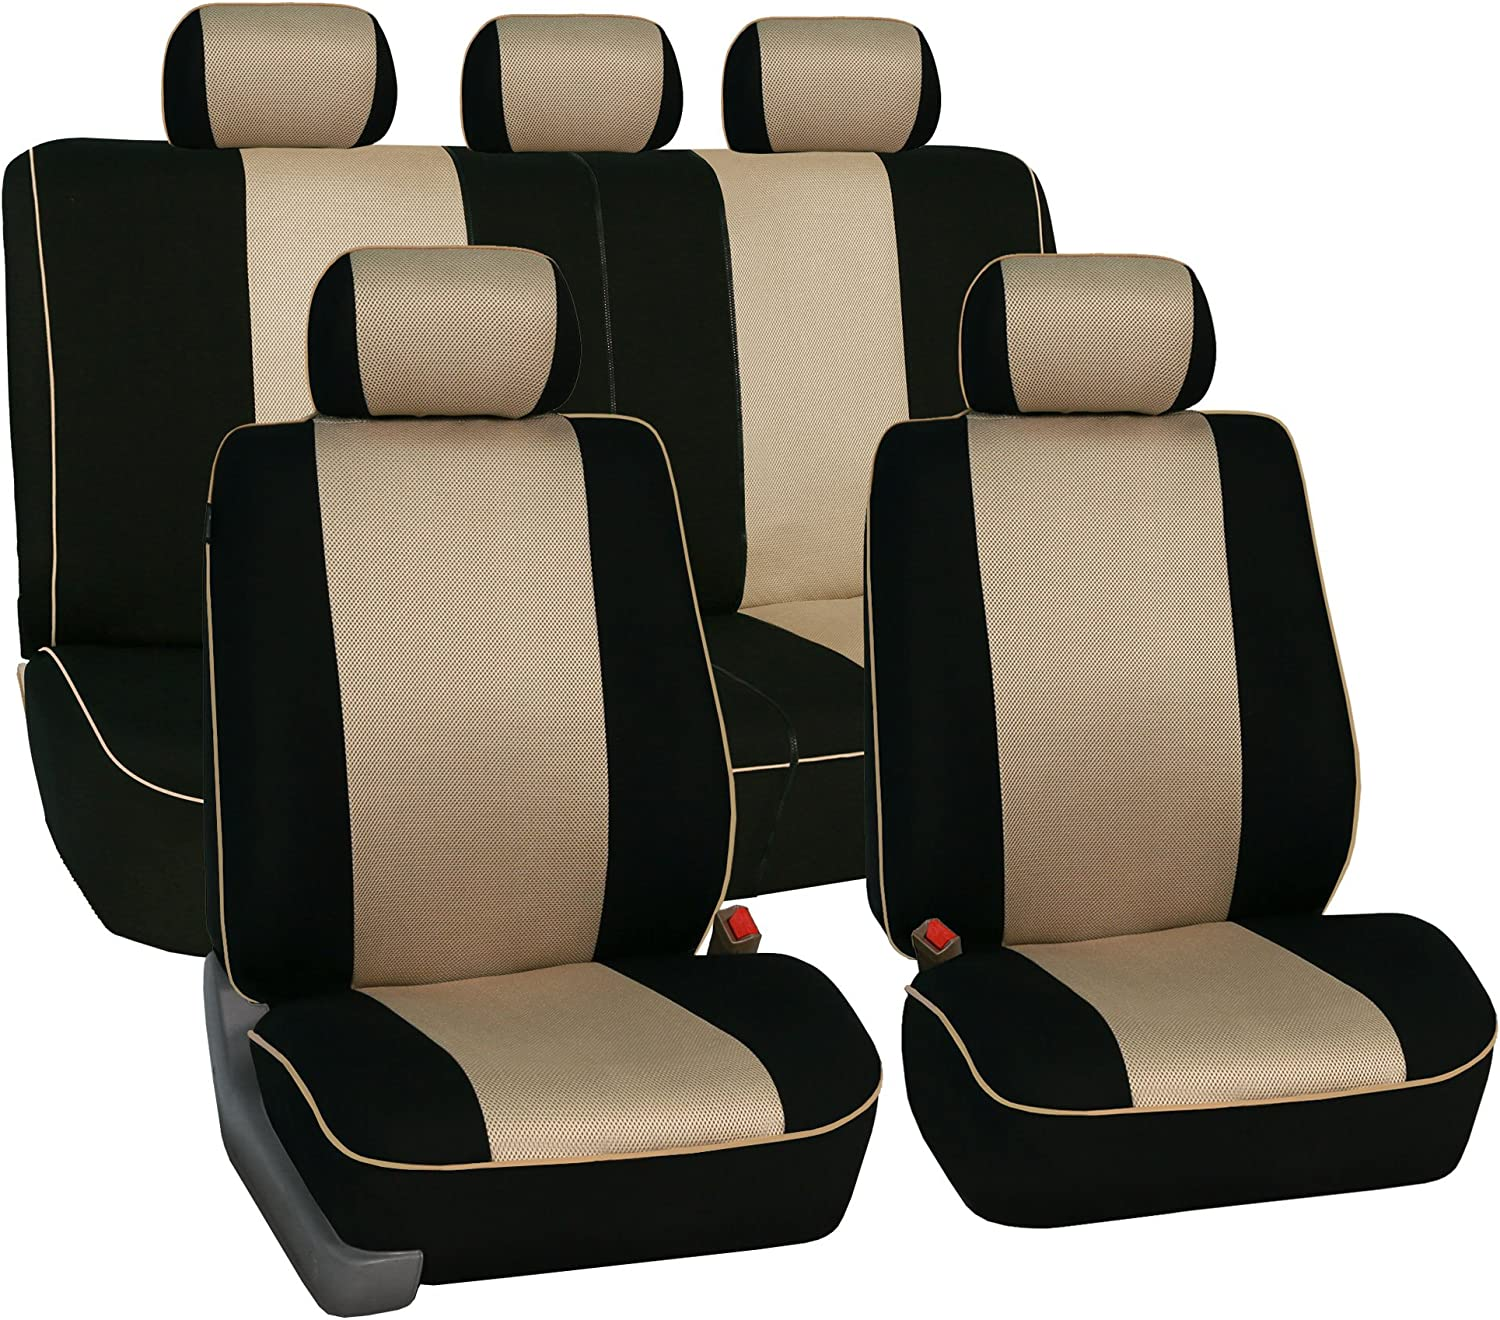 DOUBLE FORD TRANSIT CUSTOM 2019 DELUXE RED PIPING VAN SEAT COVERS SINGLE